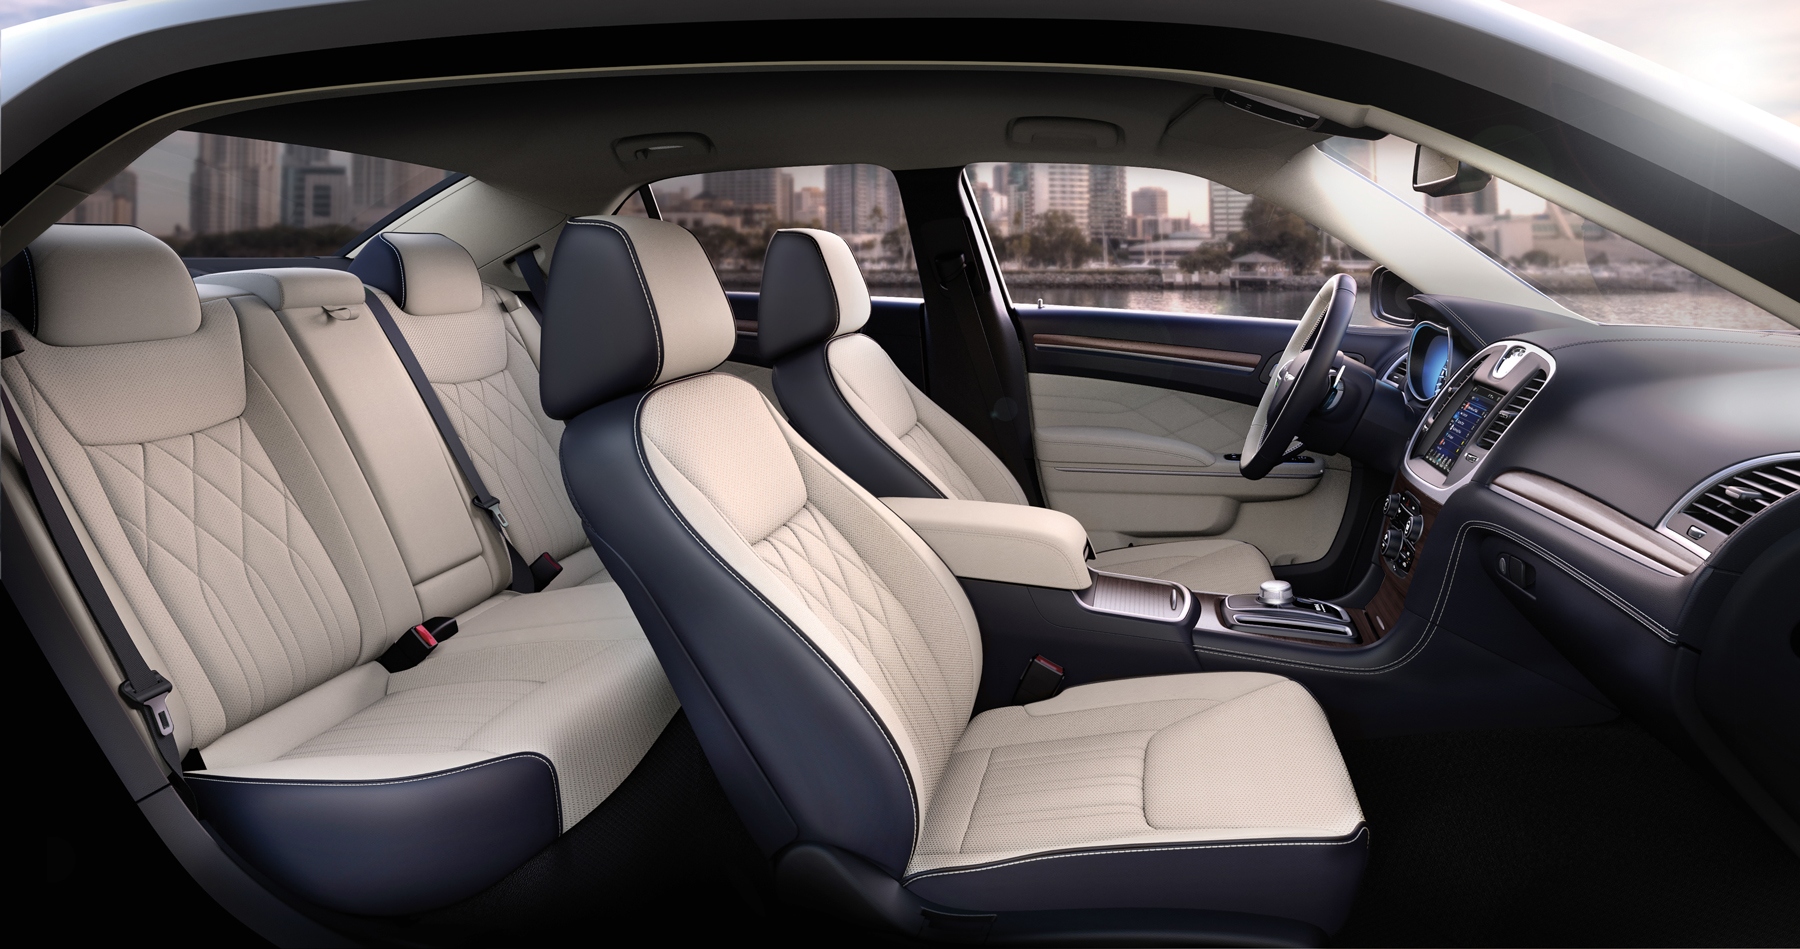 New 300 Chrysler 2016 >> 2016 Chrysler 300 Interior is Unbeatable